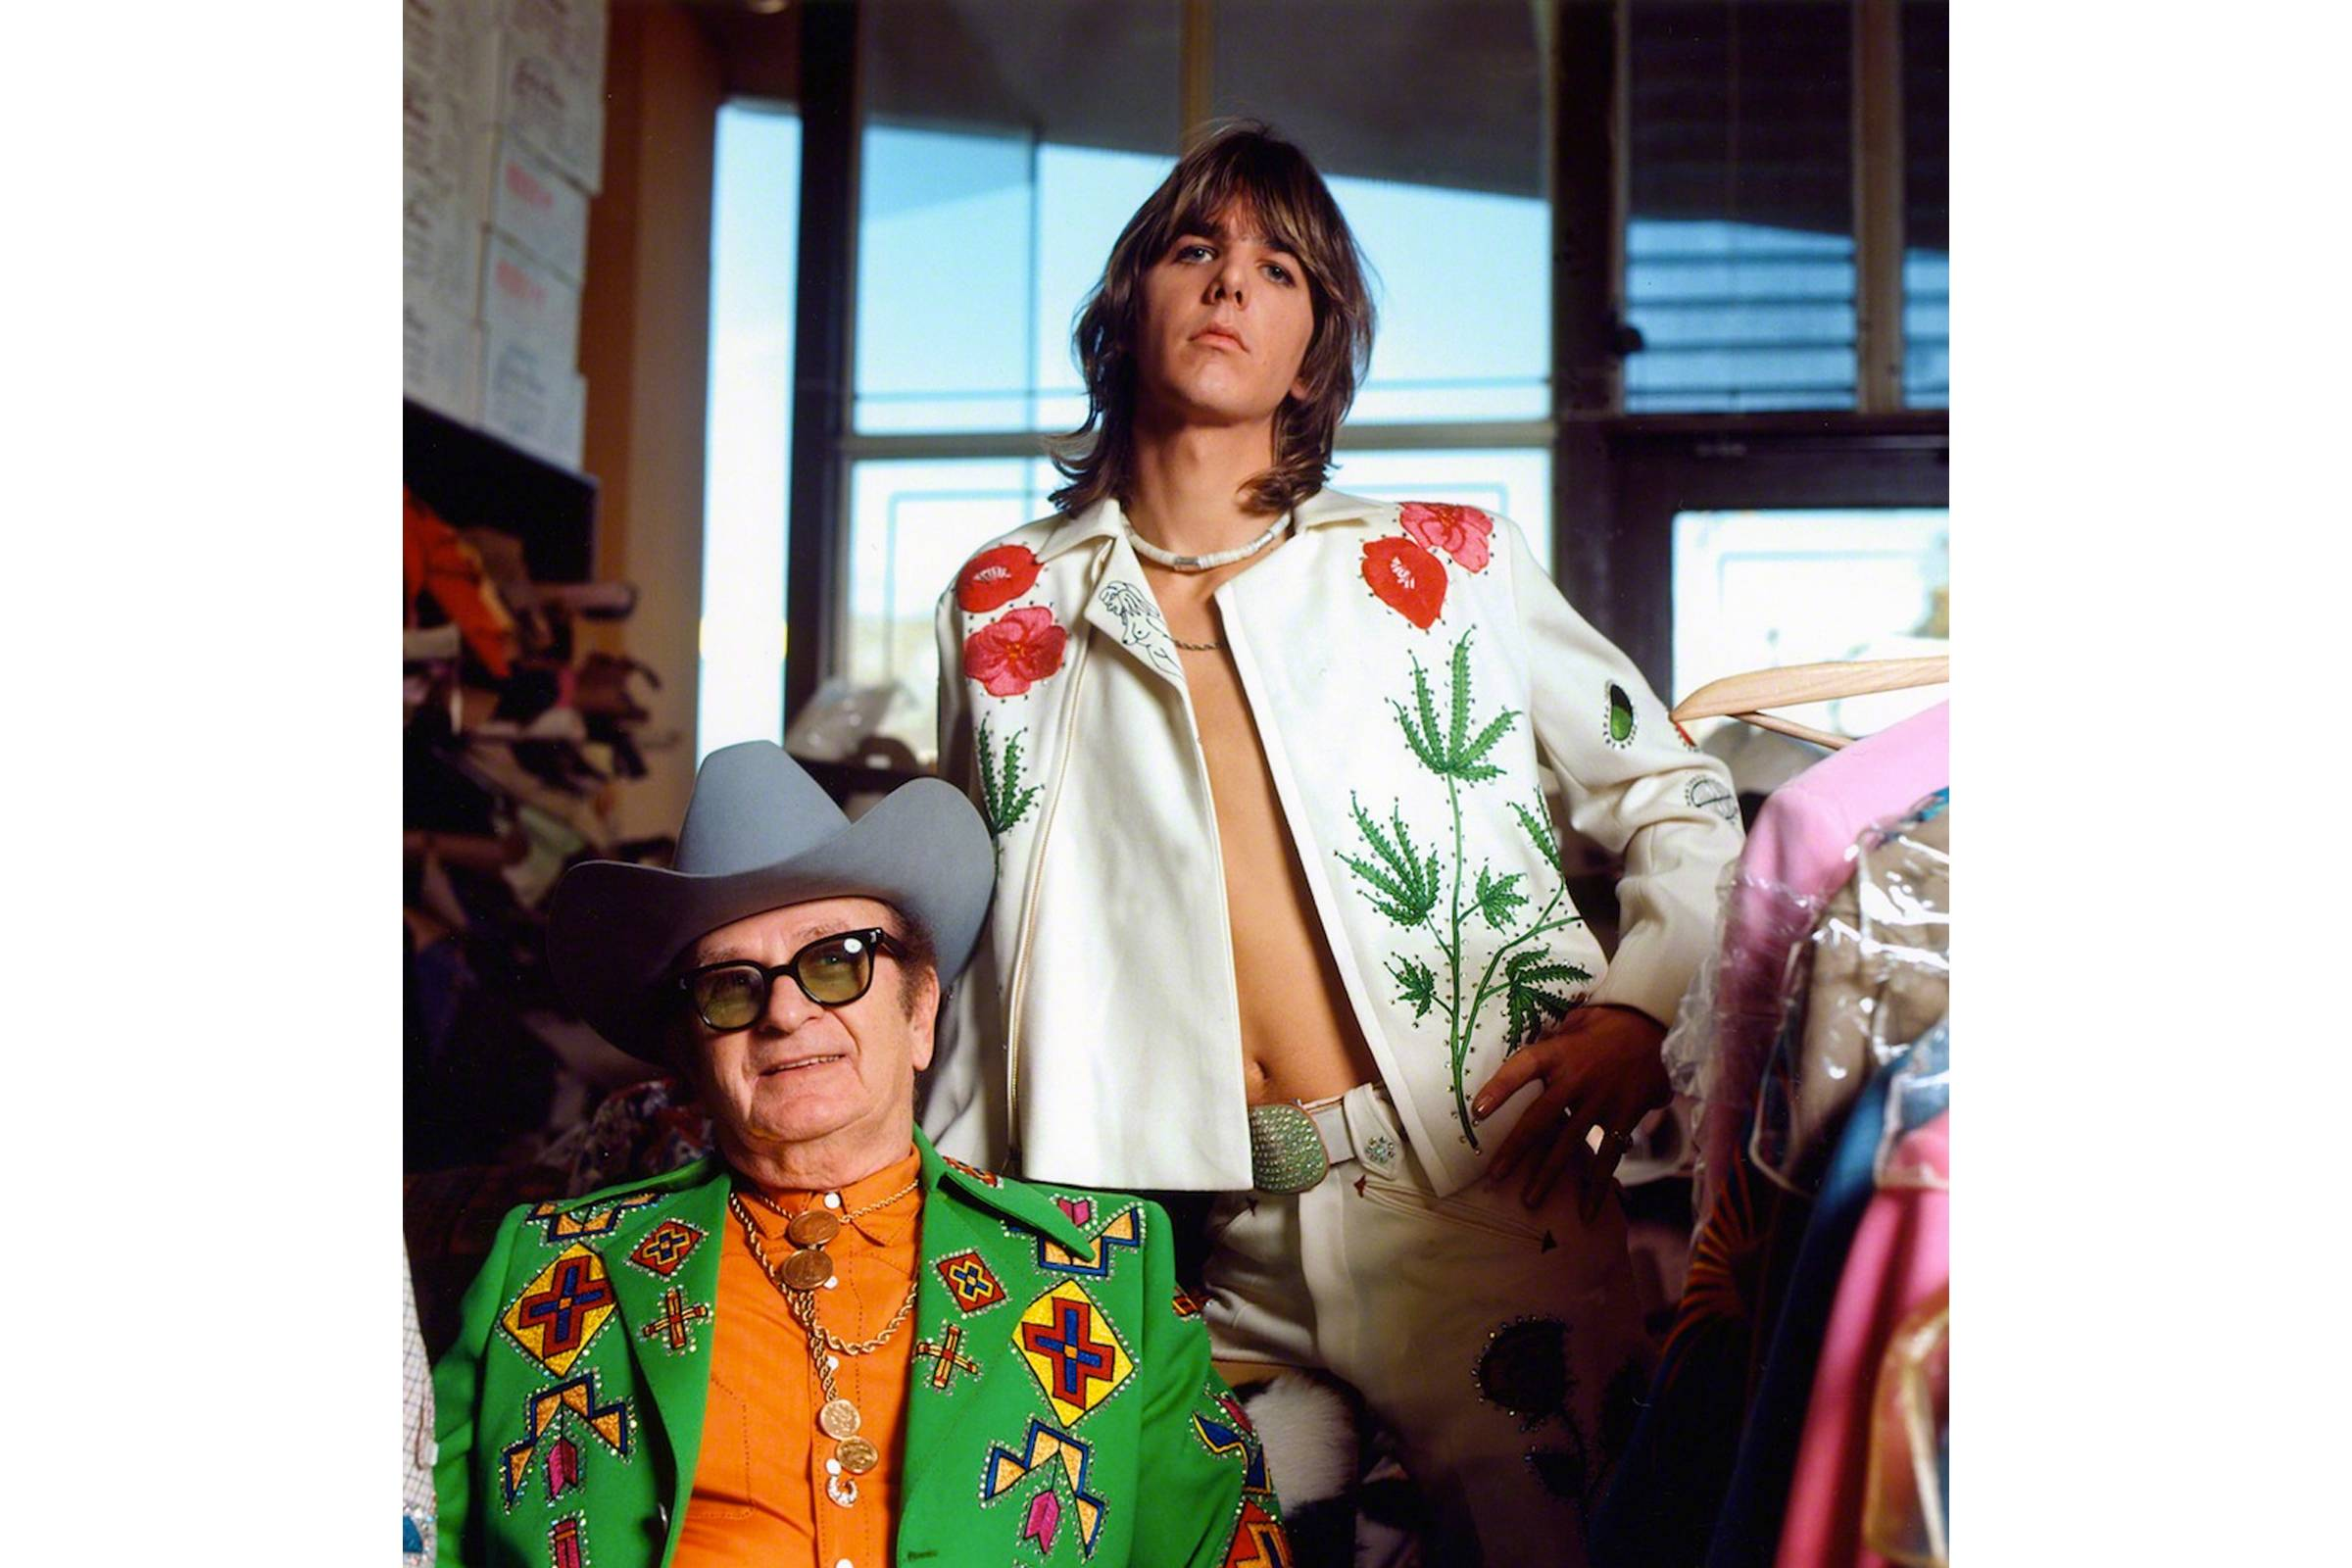 Nudie Cohn (left) and Gram Parsons at Nudie's Rodeo Tailors Shop in Los Angeles in 1968